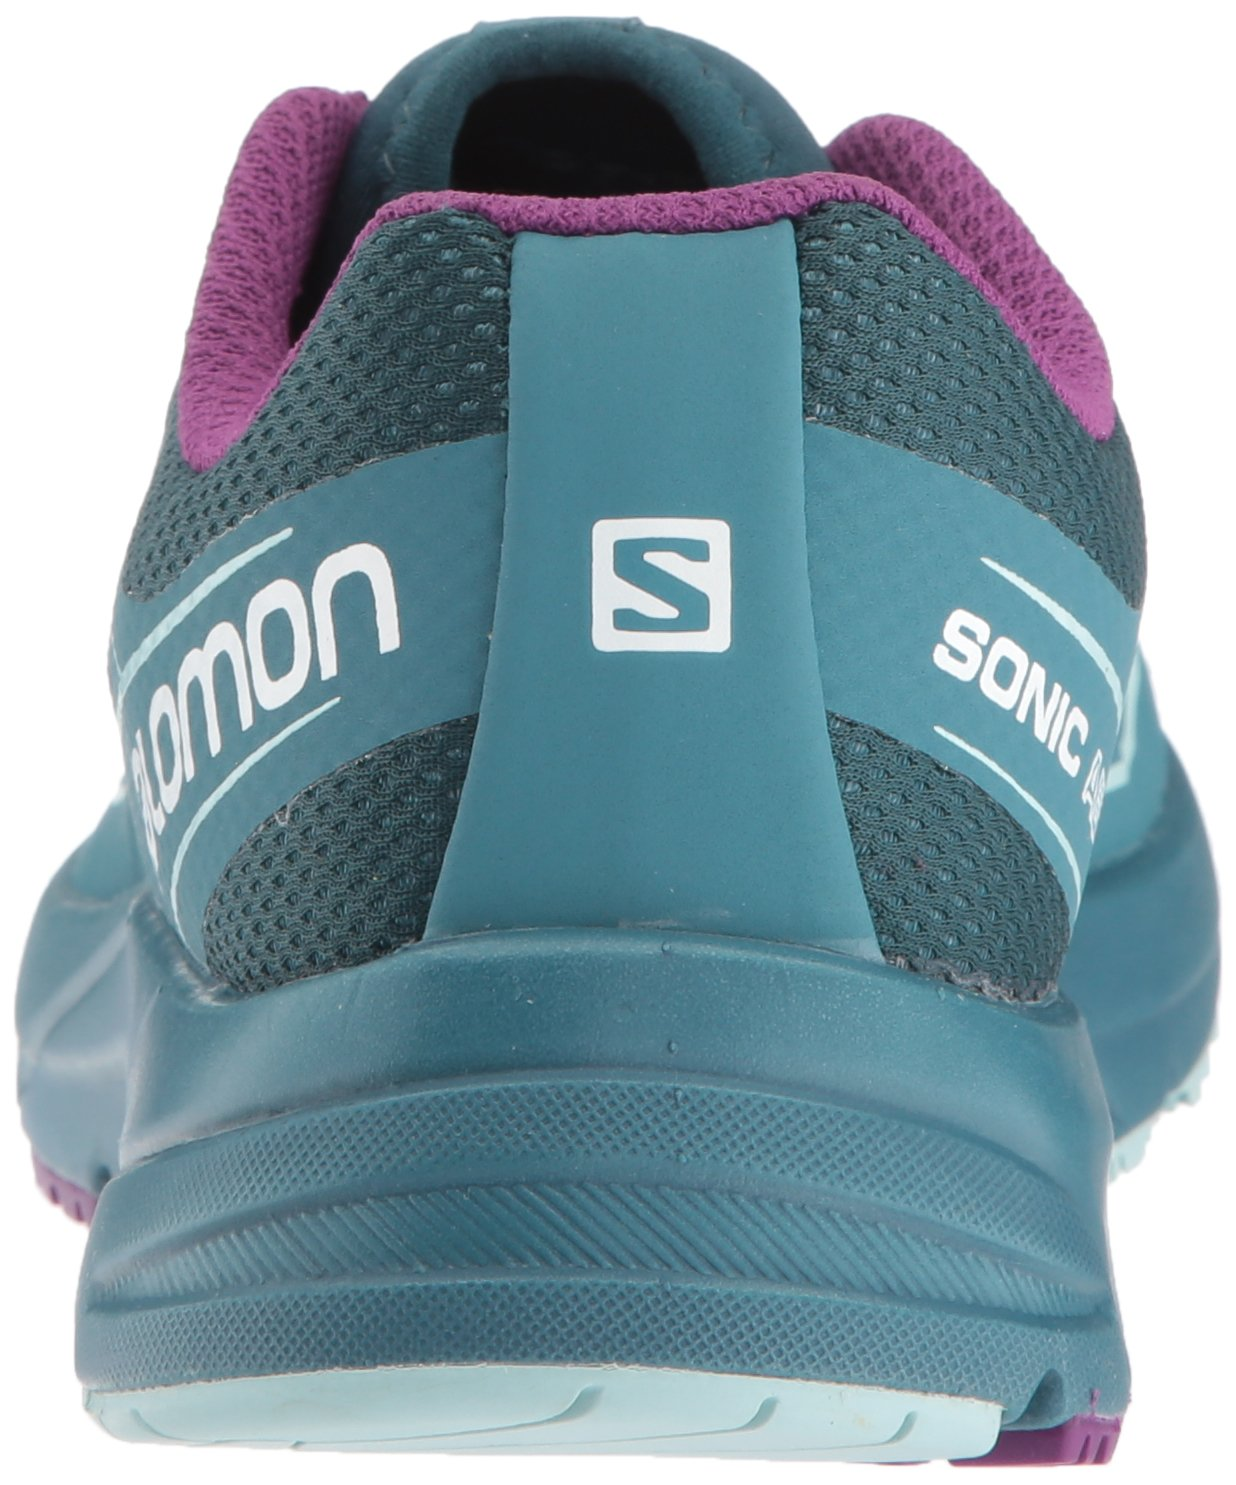 Salomon Women's Sonic Aero W L39849400 Trail Runner B01NBB949M 11 Juice B(M) US|Reflecting Pond/Mallard Blue/Grape Juice 11 ea288e